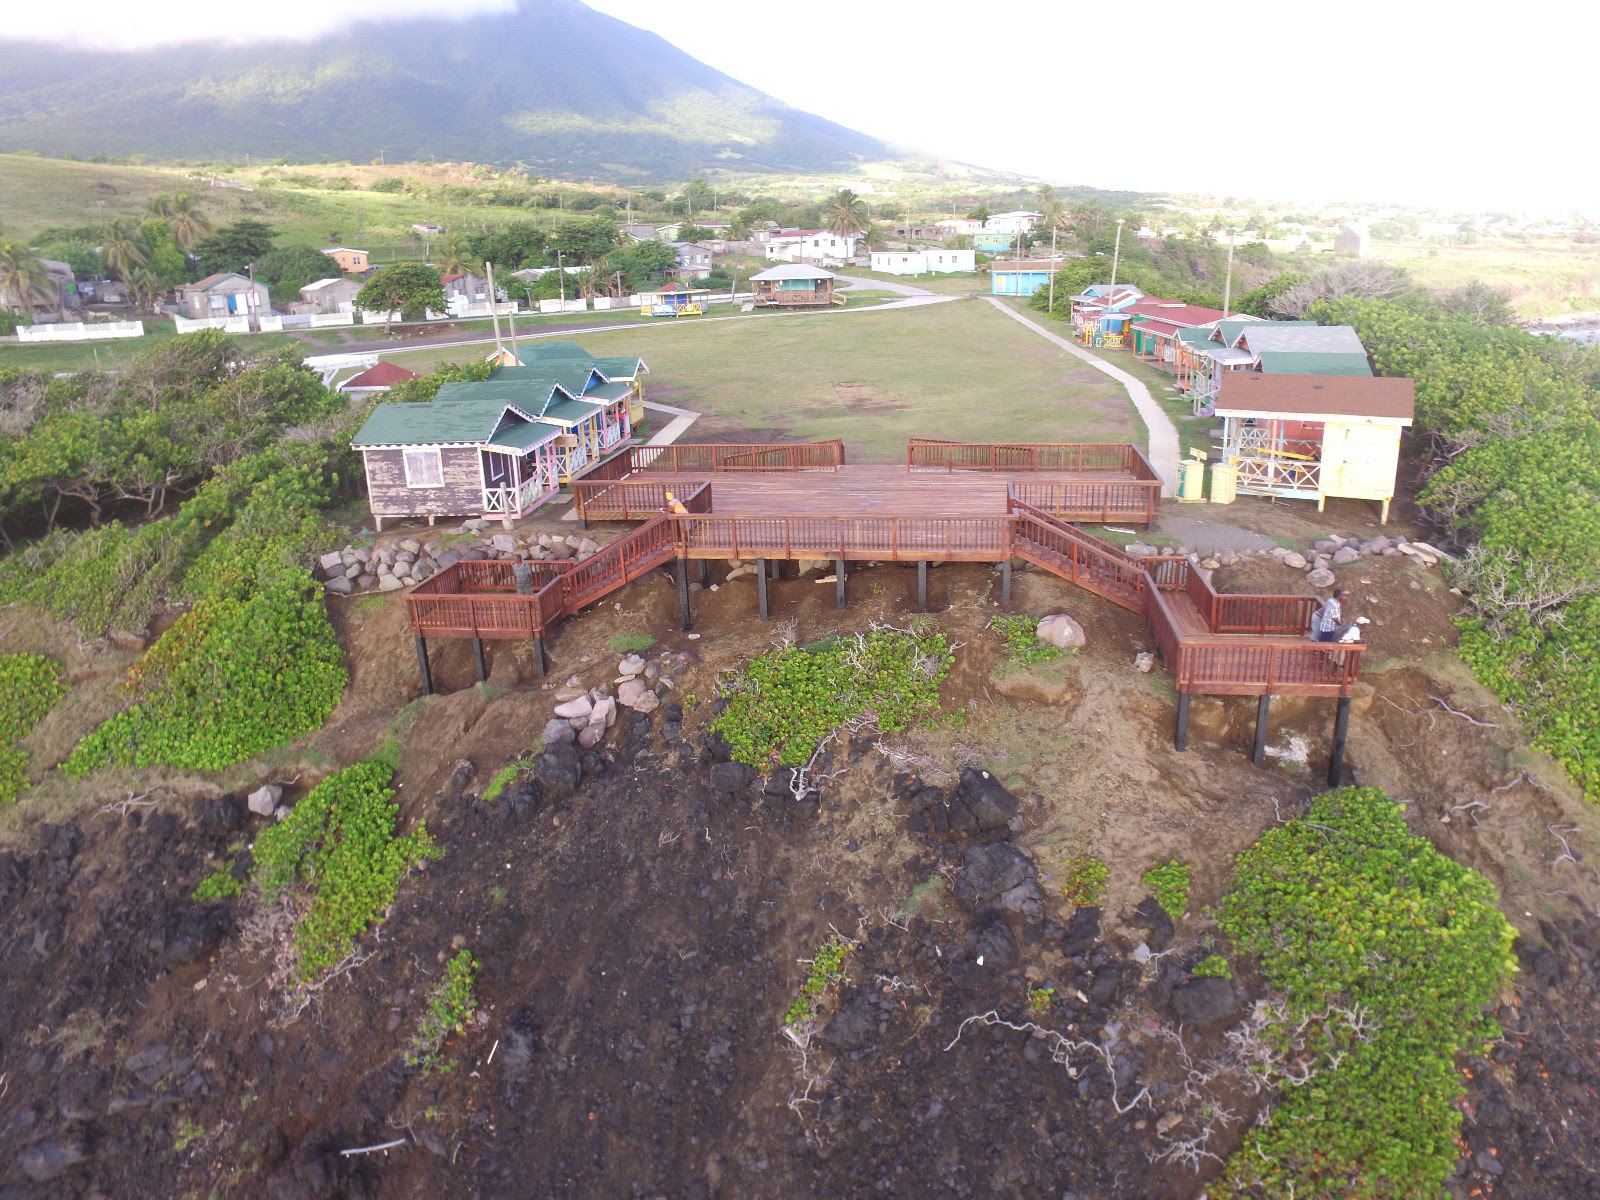 Black Rocks Deck Commissioned: PM Harris says site is being taken seriously